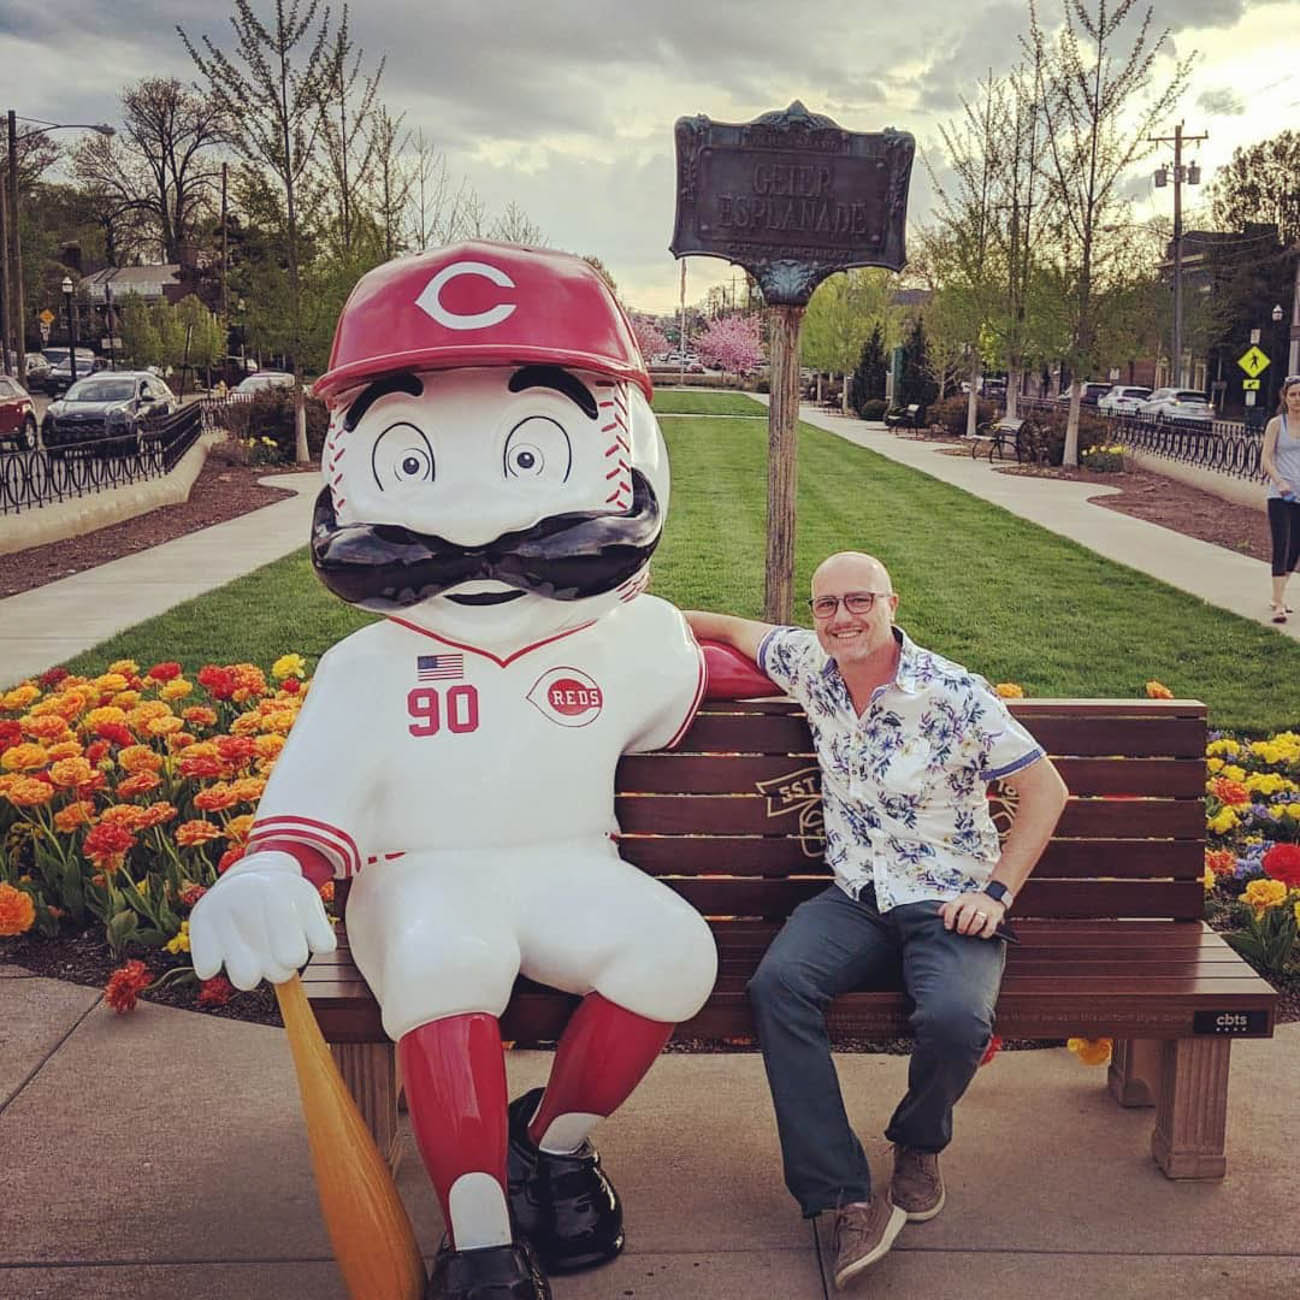 To celebrate the Reds' 150th Anniversary, 24 benches featuring Mr. Redlegs sculptures have been added to various spots around the area, as well as out of town locations including Dayton, Loveland, and Louisville, for the perfect Reds photo op. The mascot sports different uniforms from throughout the team's history at each of the benches. The Reds have been wearing these same throwback uniforms during their 2019 season. / Location: Oakley Square / Uniform: 1990 / Image courtesy of Instagram user @ryandale1976_   // Published: 5.14.19{ }